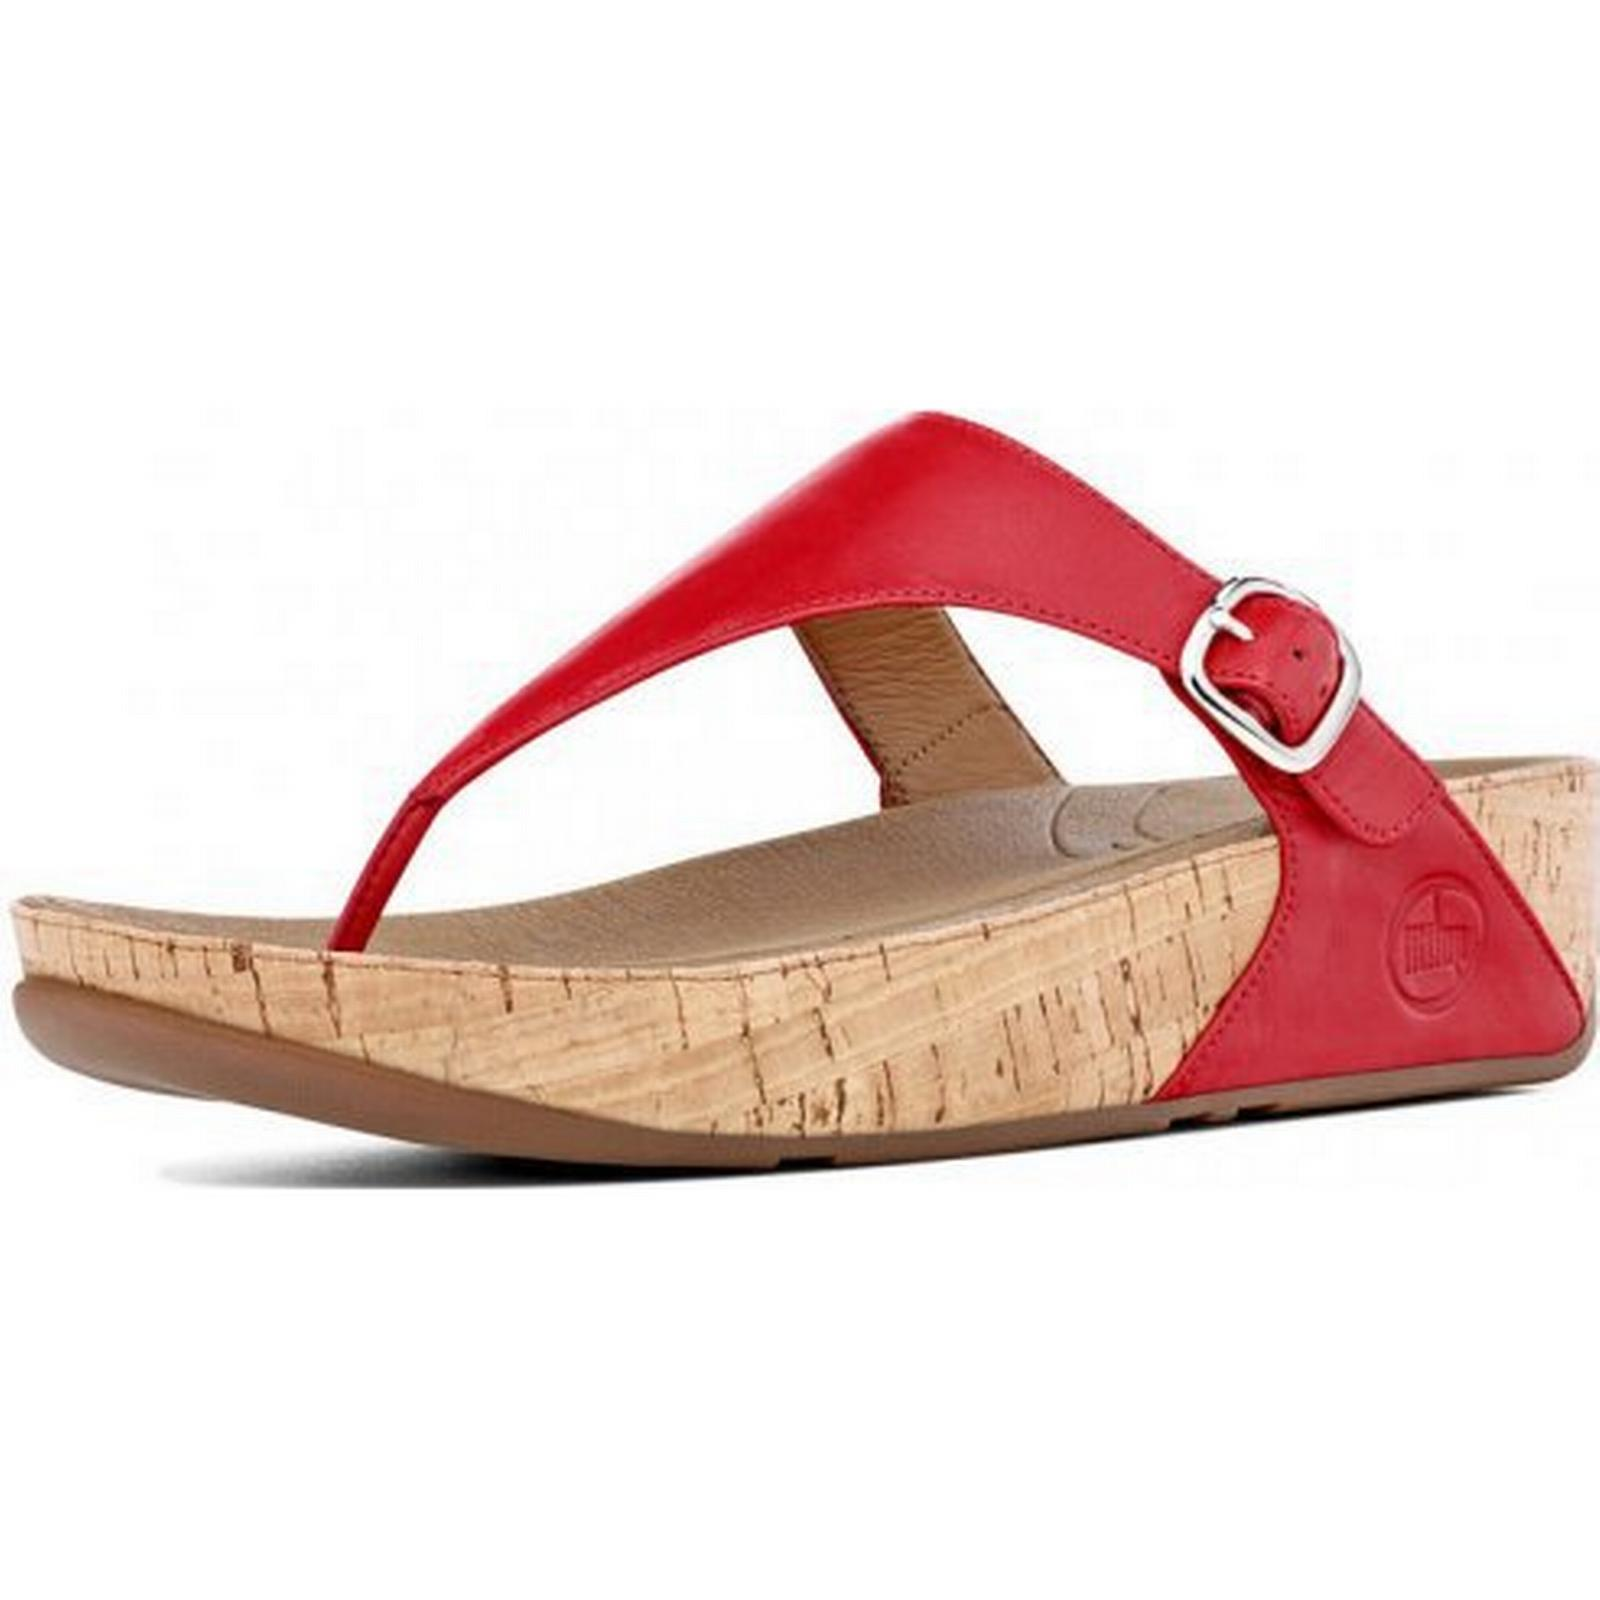 FitFlop The Skinny Sandal in FF Red Size: Colour: 3, Colour: Size: RED 9a8355